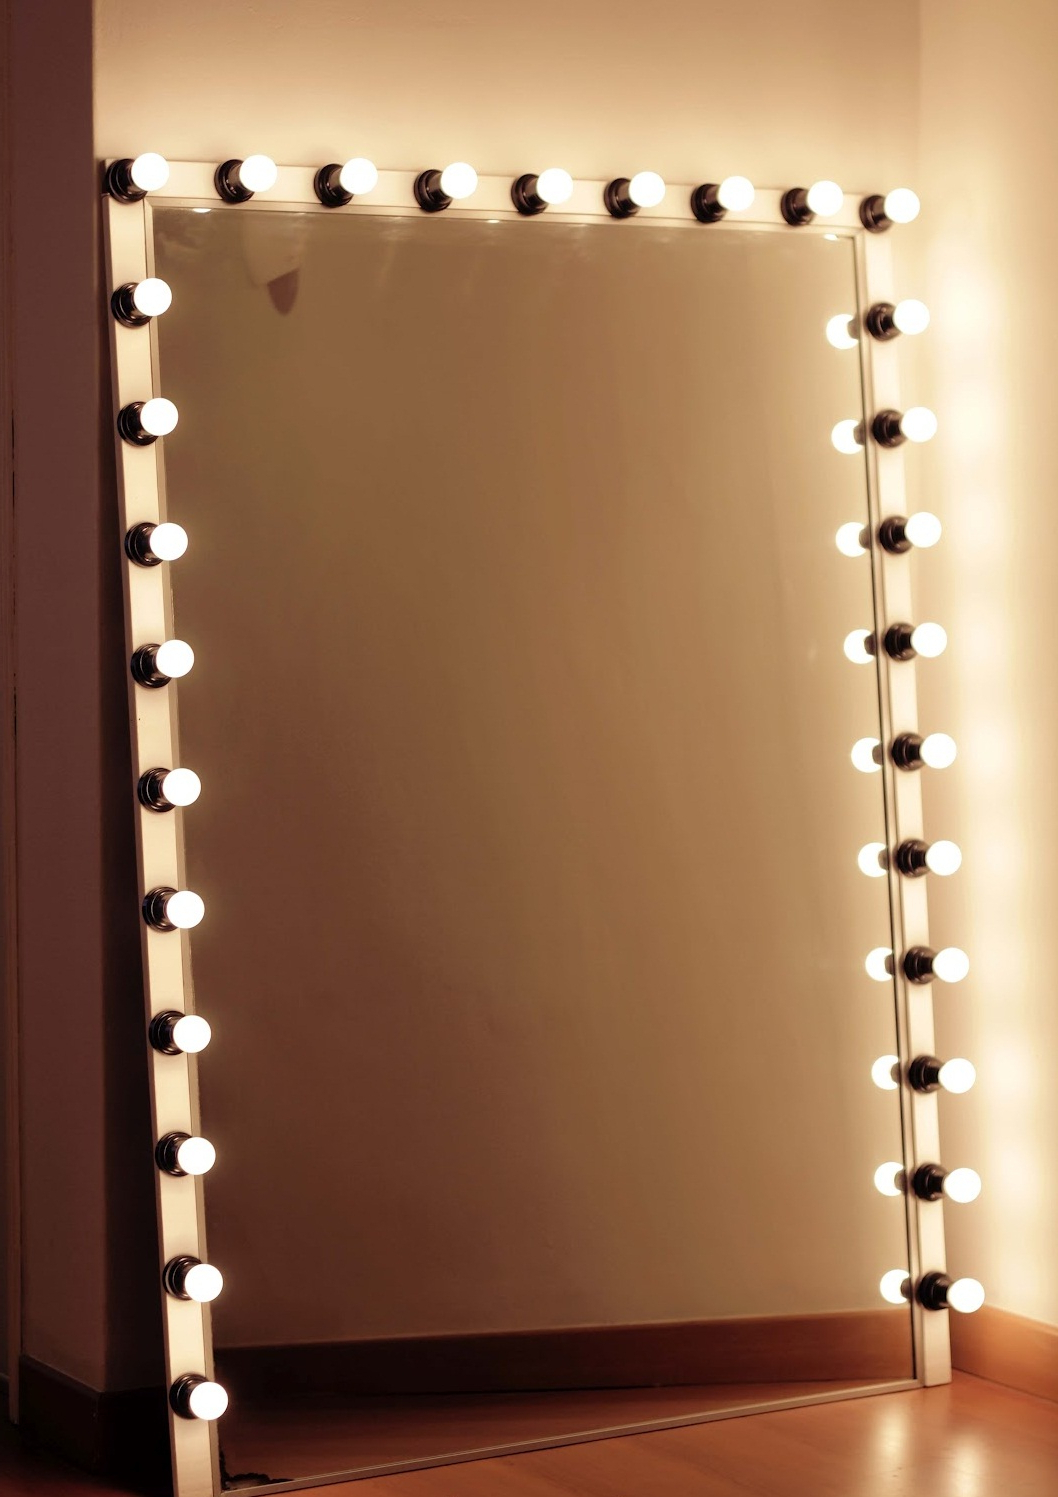 Decorations Stunning Square Wall Mirrors With Light Bulbs Black For Most Current Wall Mirrors With Light Bulbs (View 5 of 20)